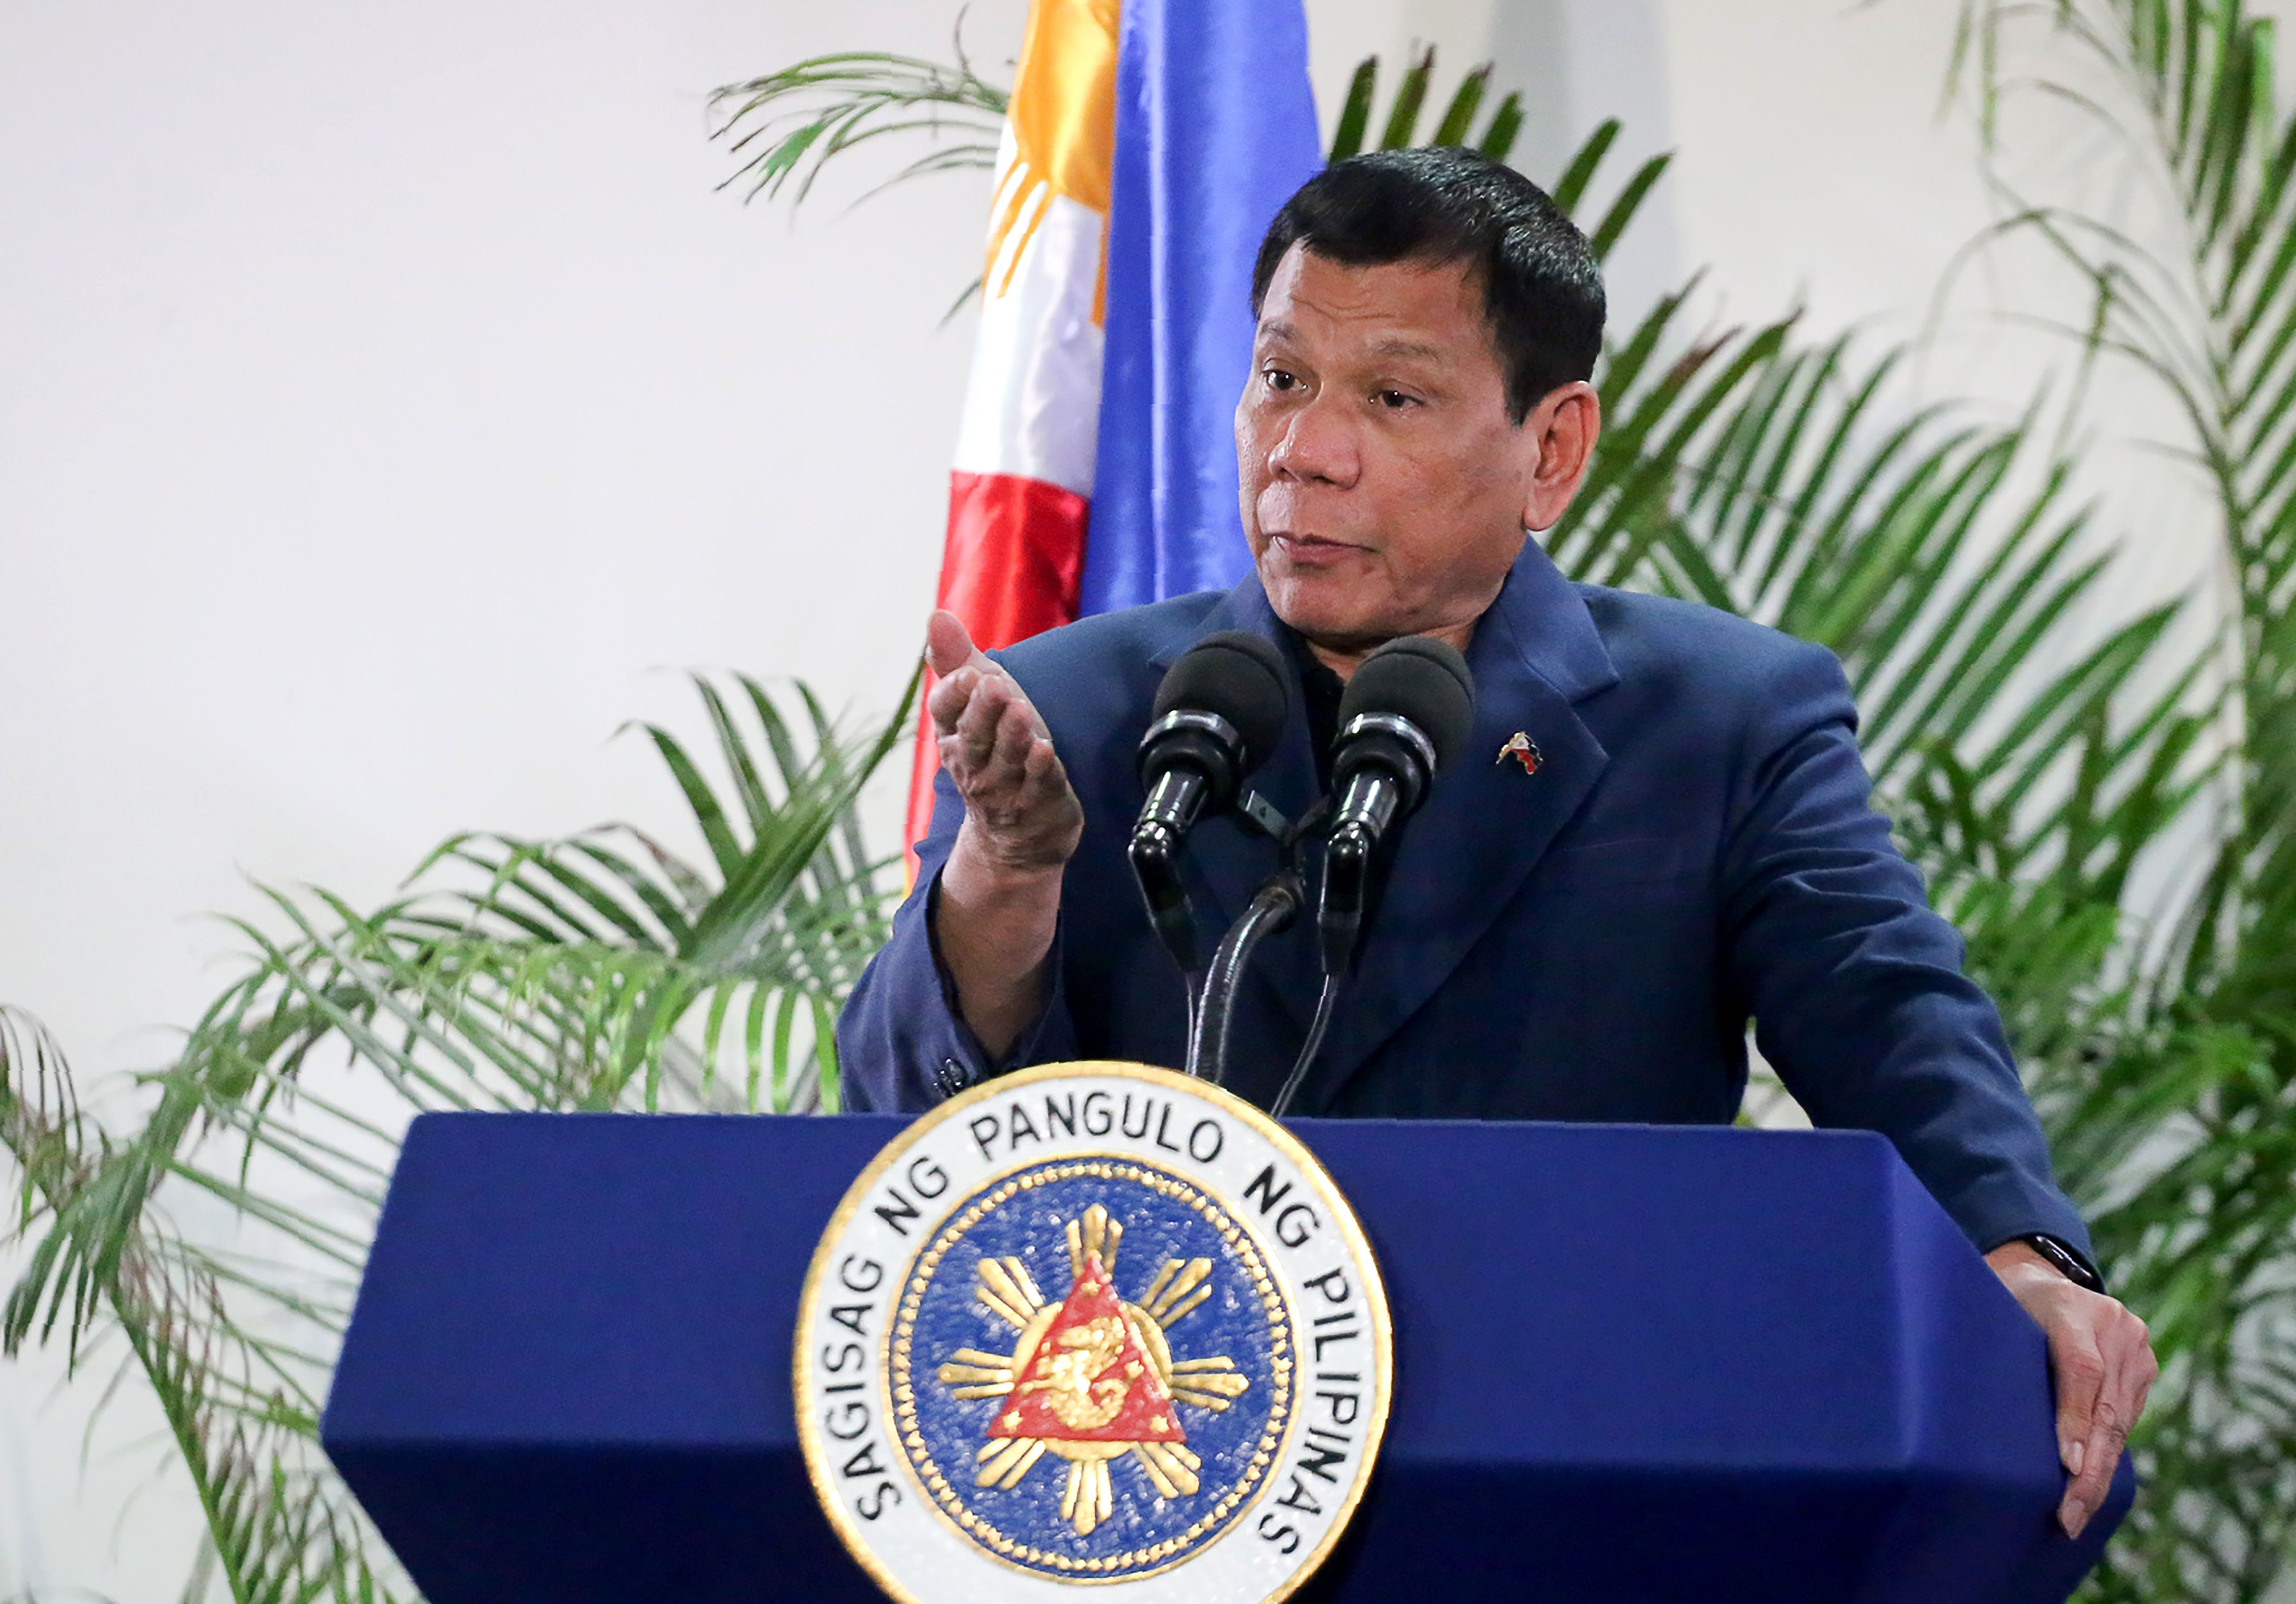 Philippine President Rodrigo Duterte speaks at the Davao International Airport in the Philippine city of Davao after returning from a state visit to Brunei and China on Oct. 22, 2016